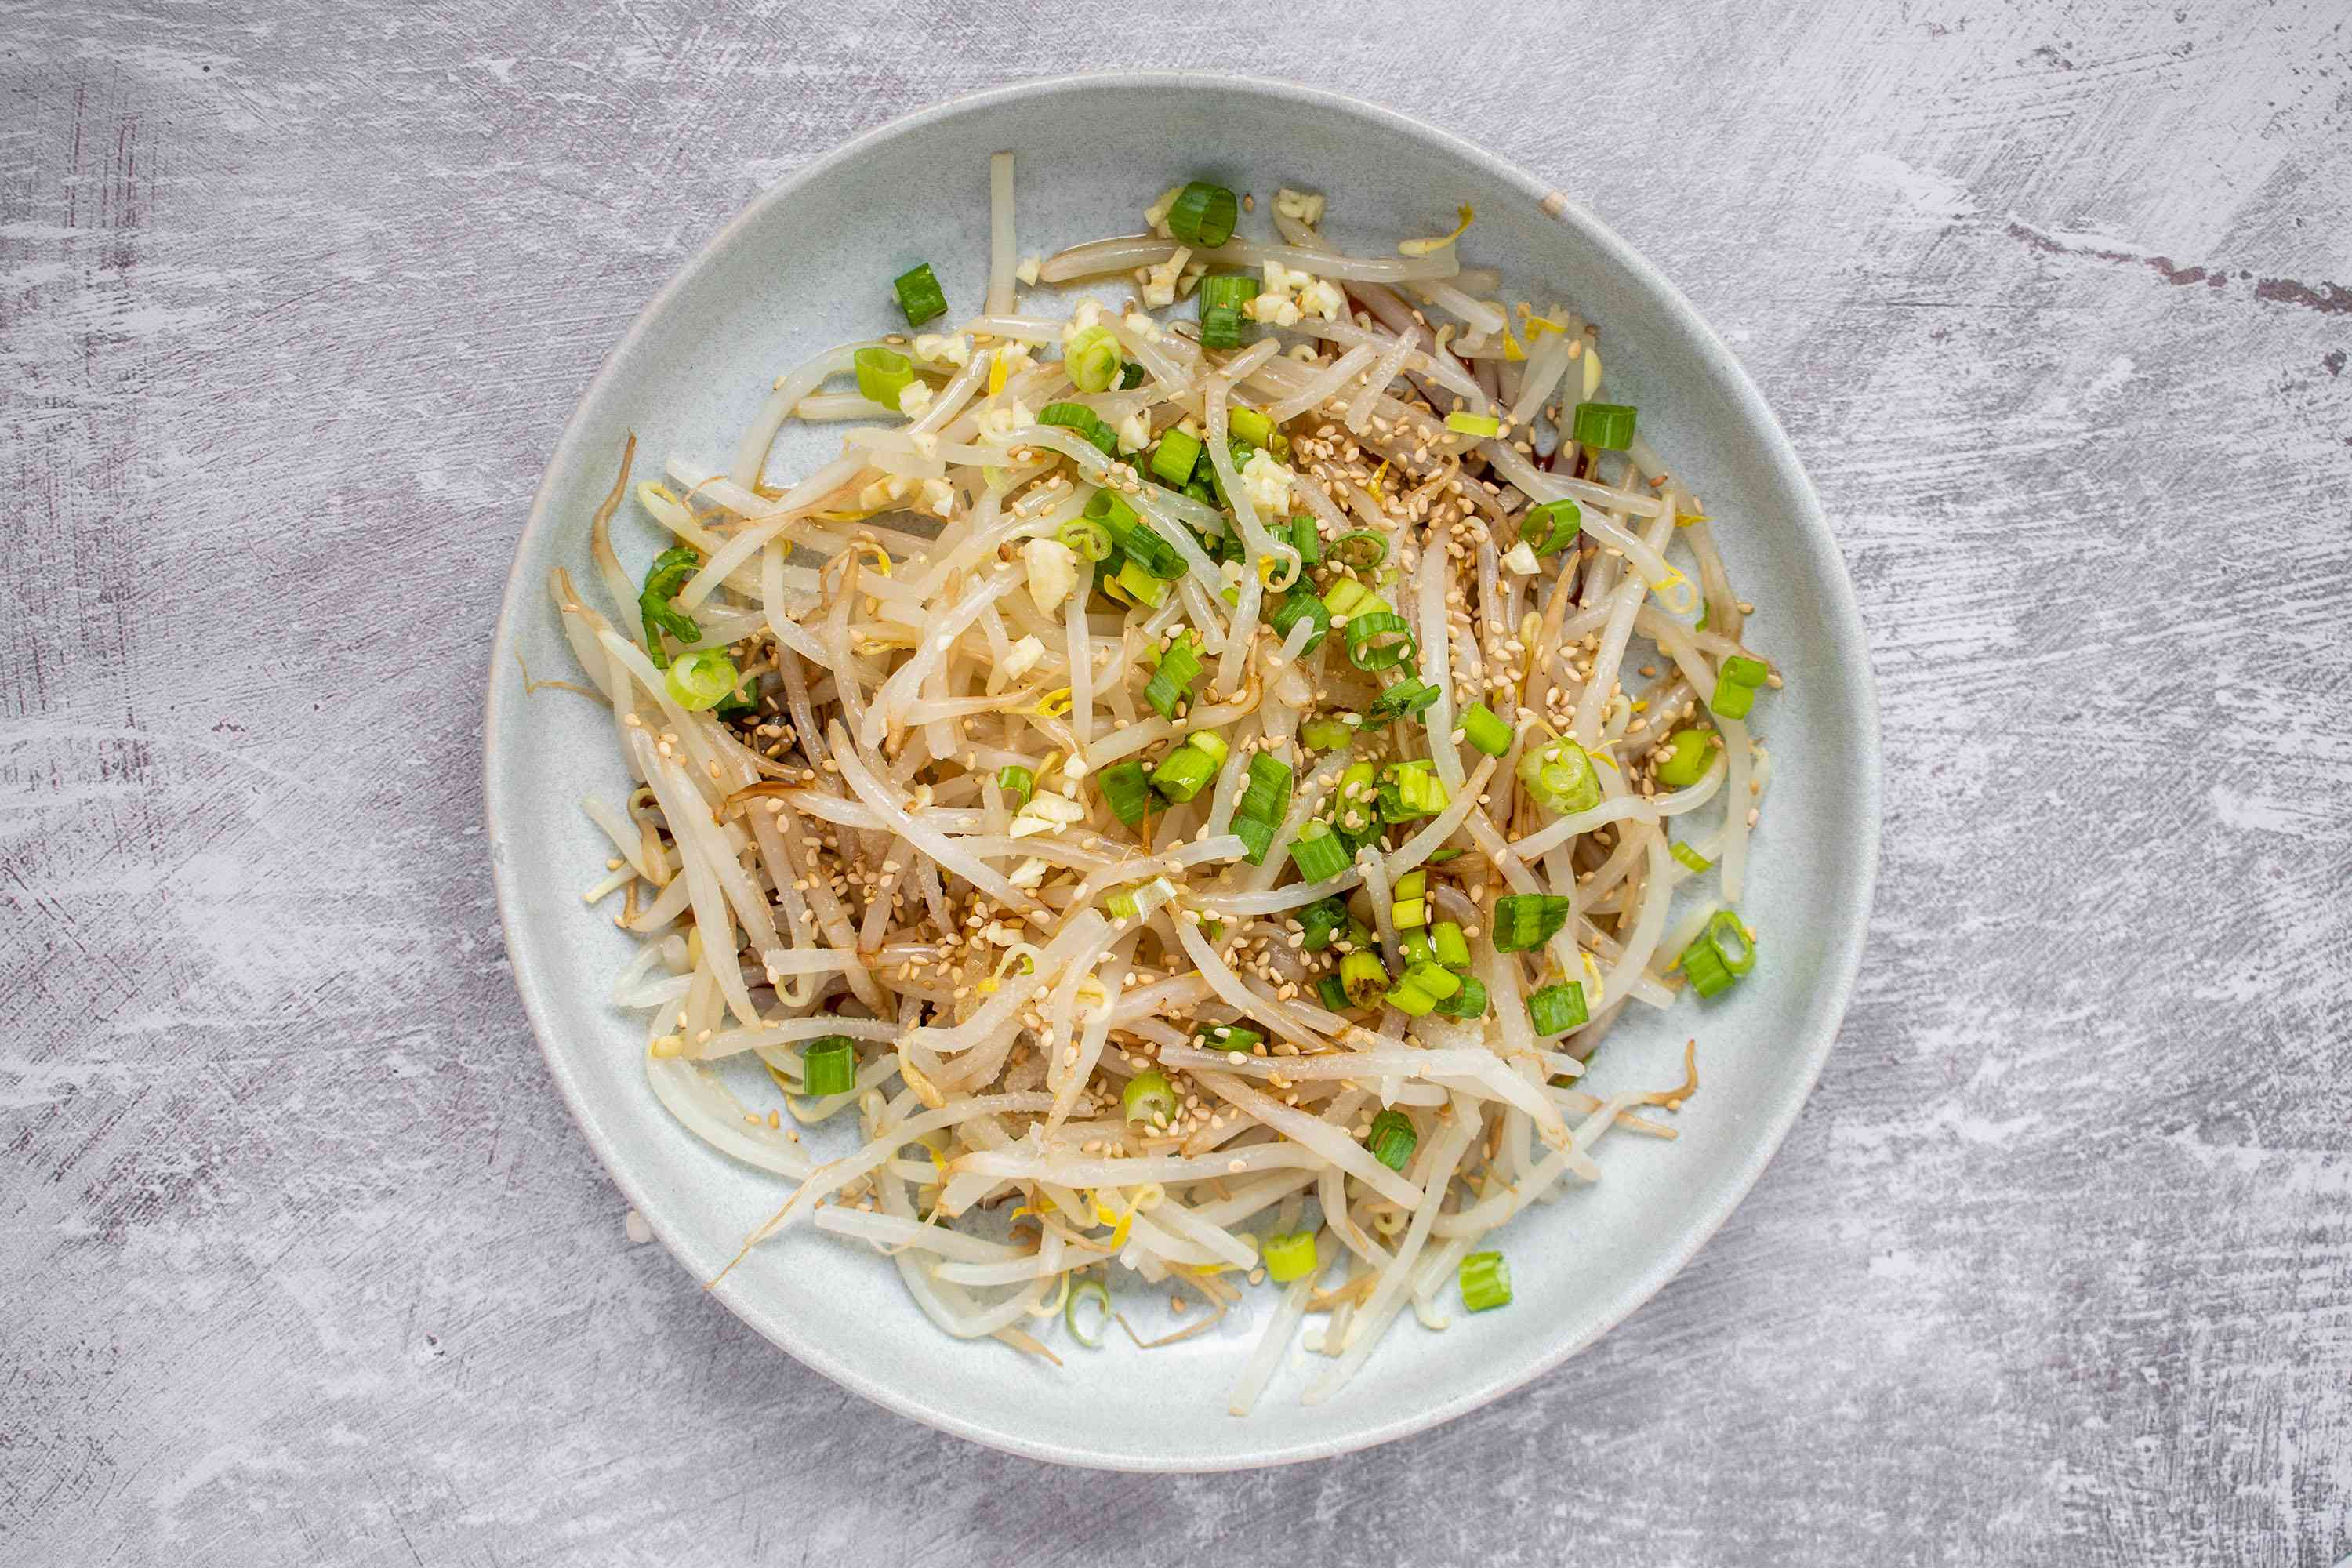 toss bean sprouts with other ingredients to make Korean Bean Sprout Salad (Sookju Namul)